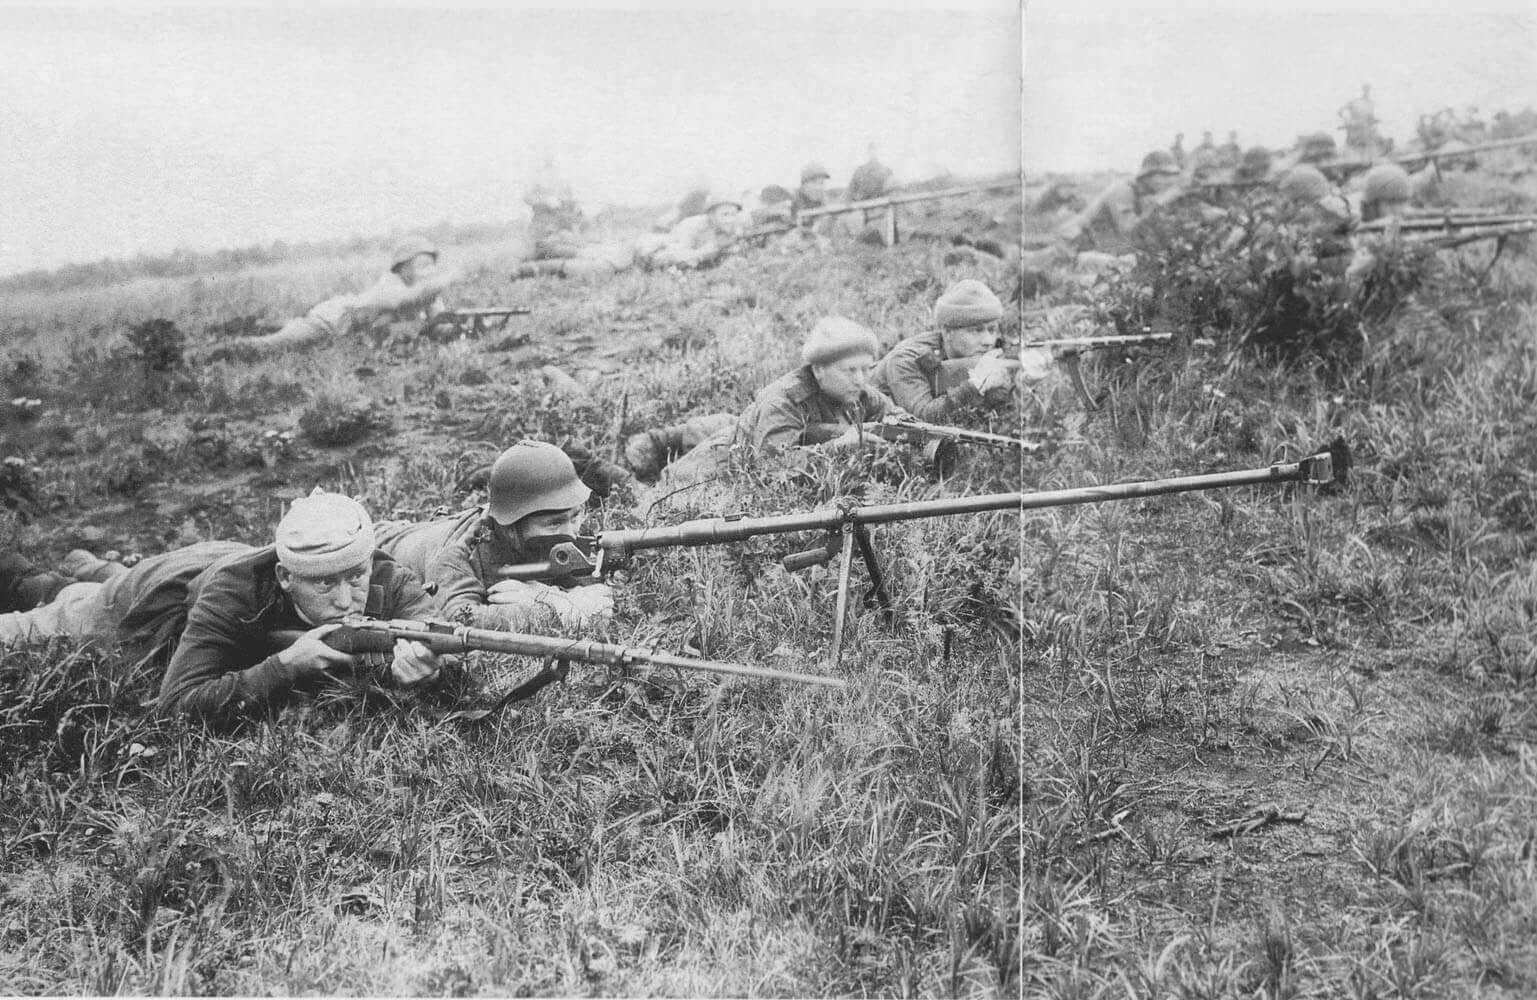 Soviet soldiers with anti-tank rifles in position.